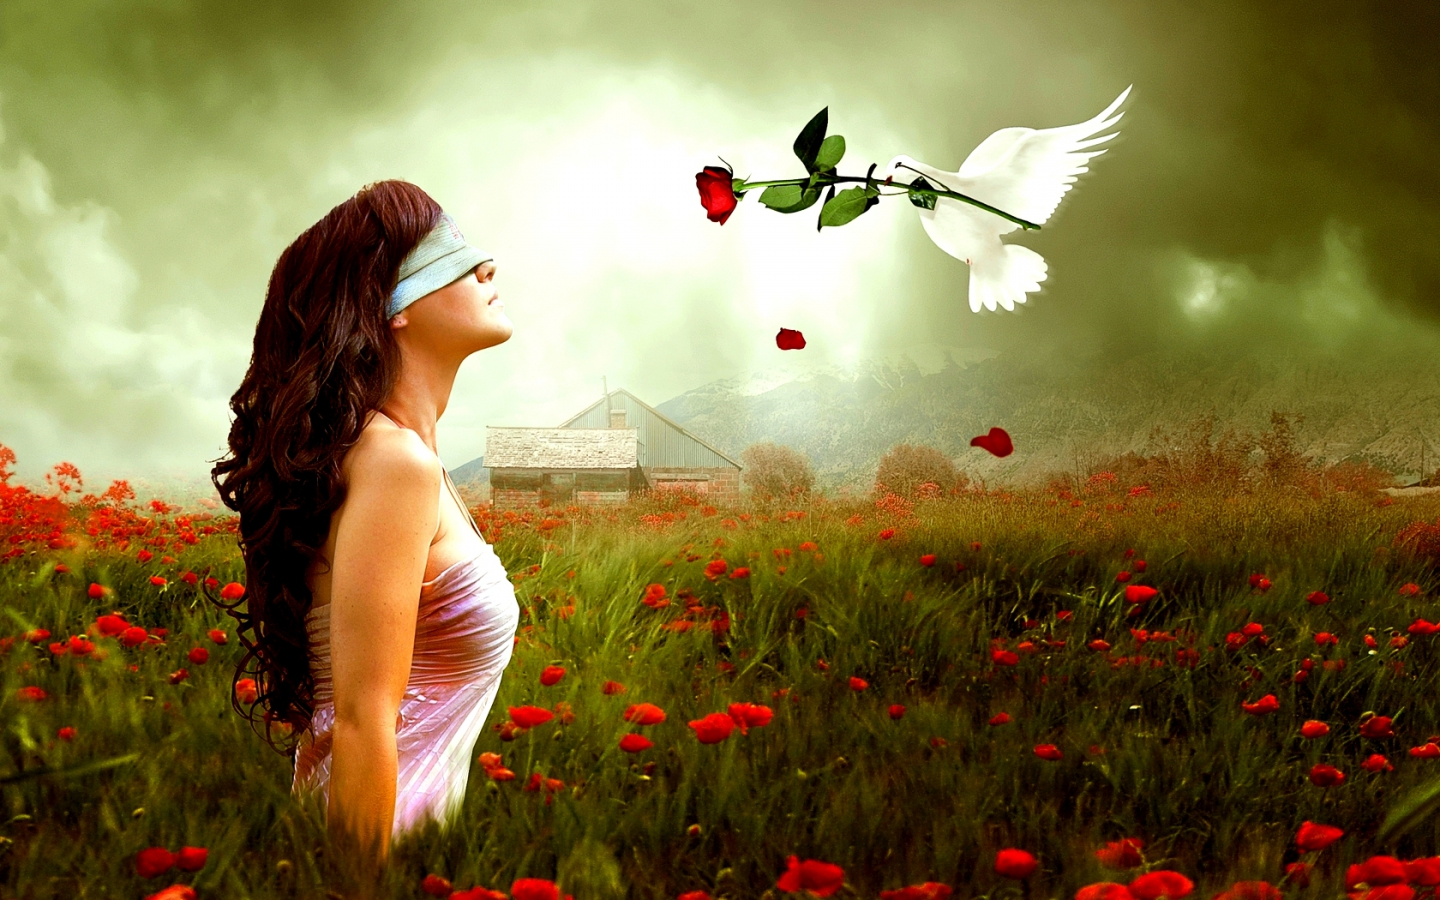 blind-love-top-hd-wallpapers-cool-background